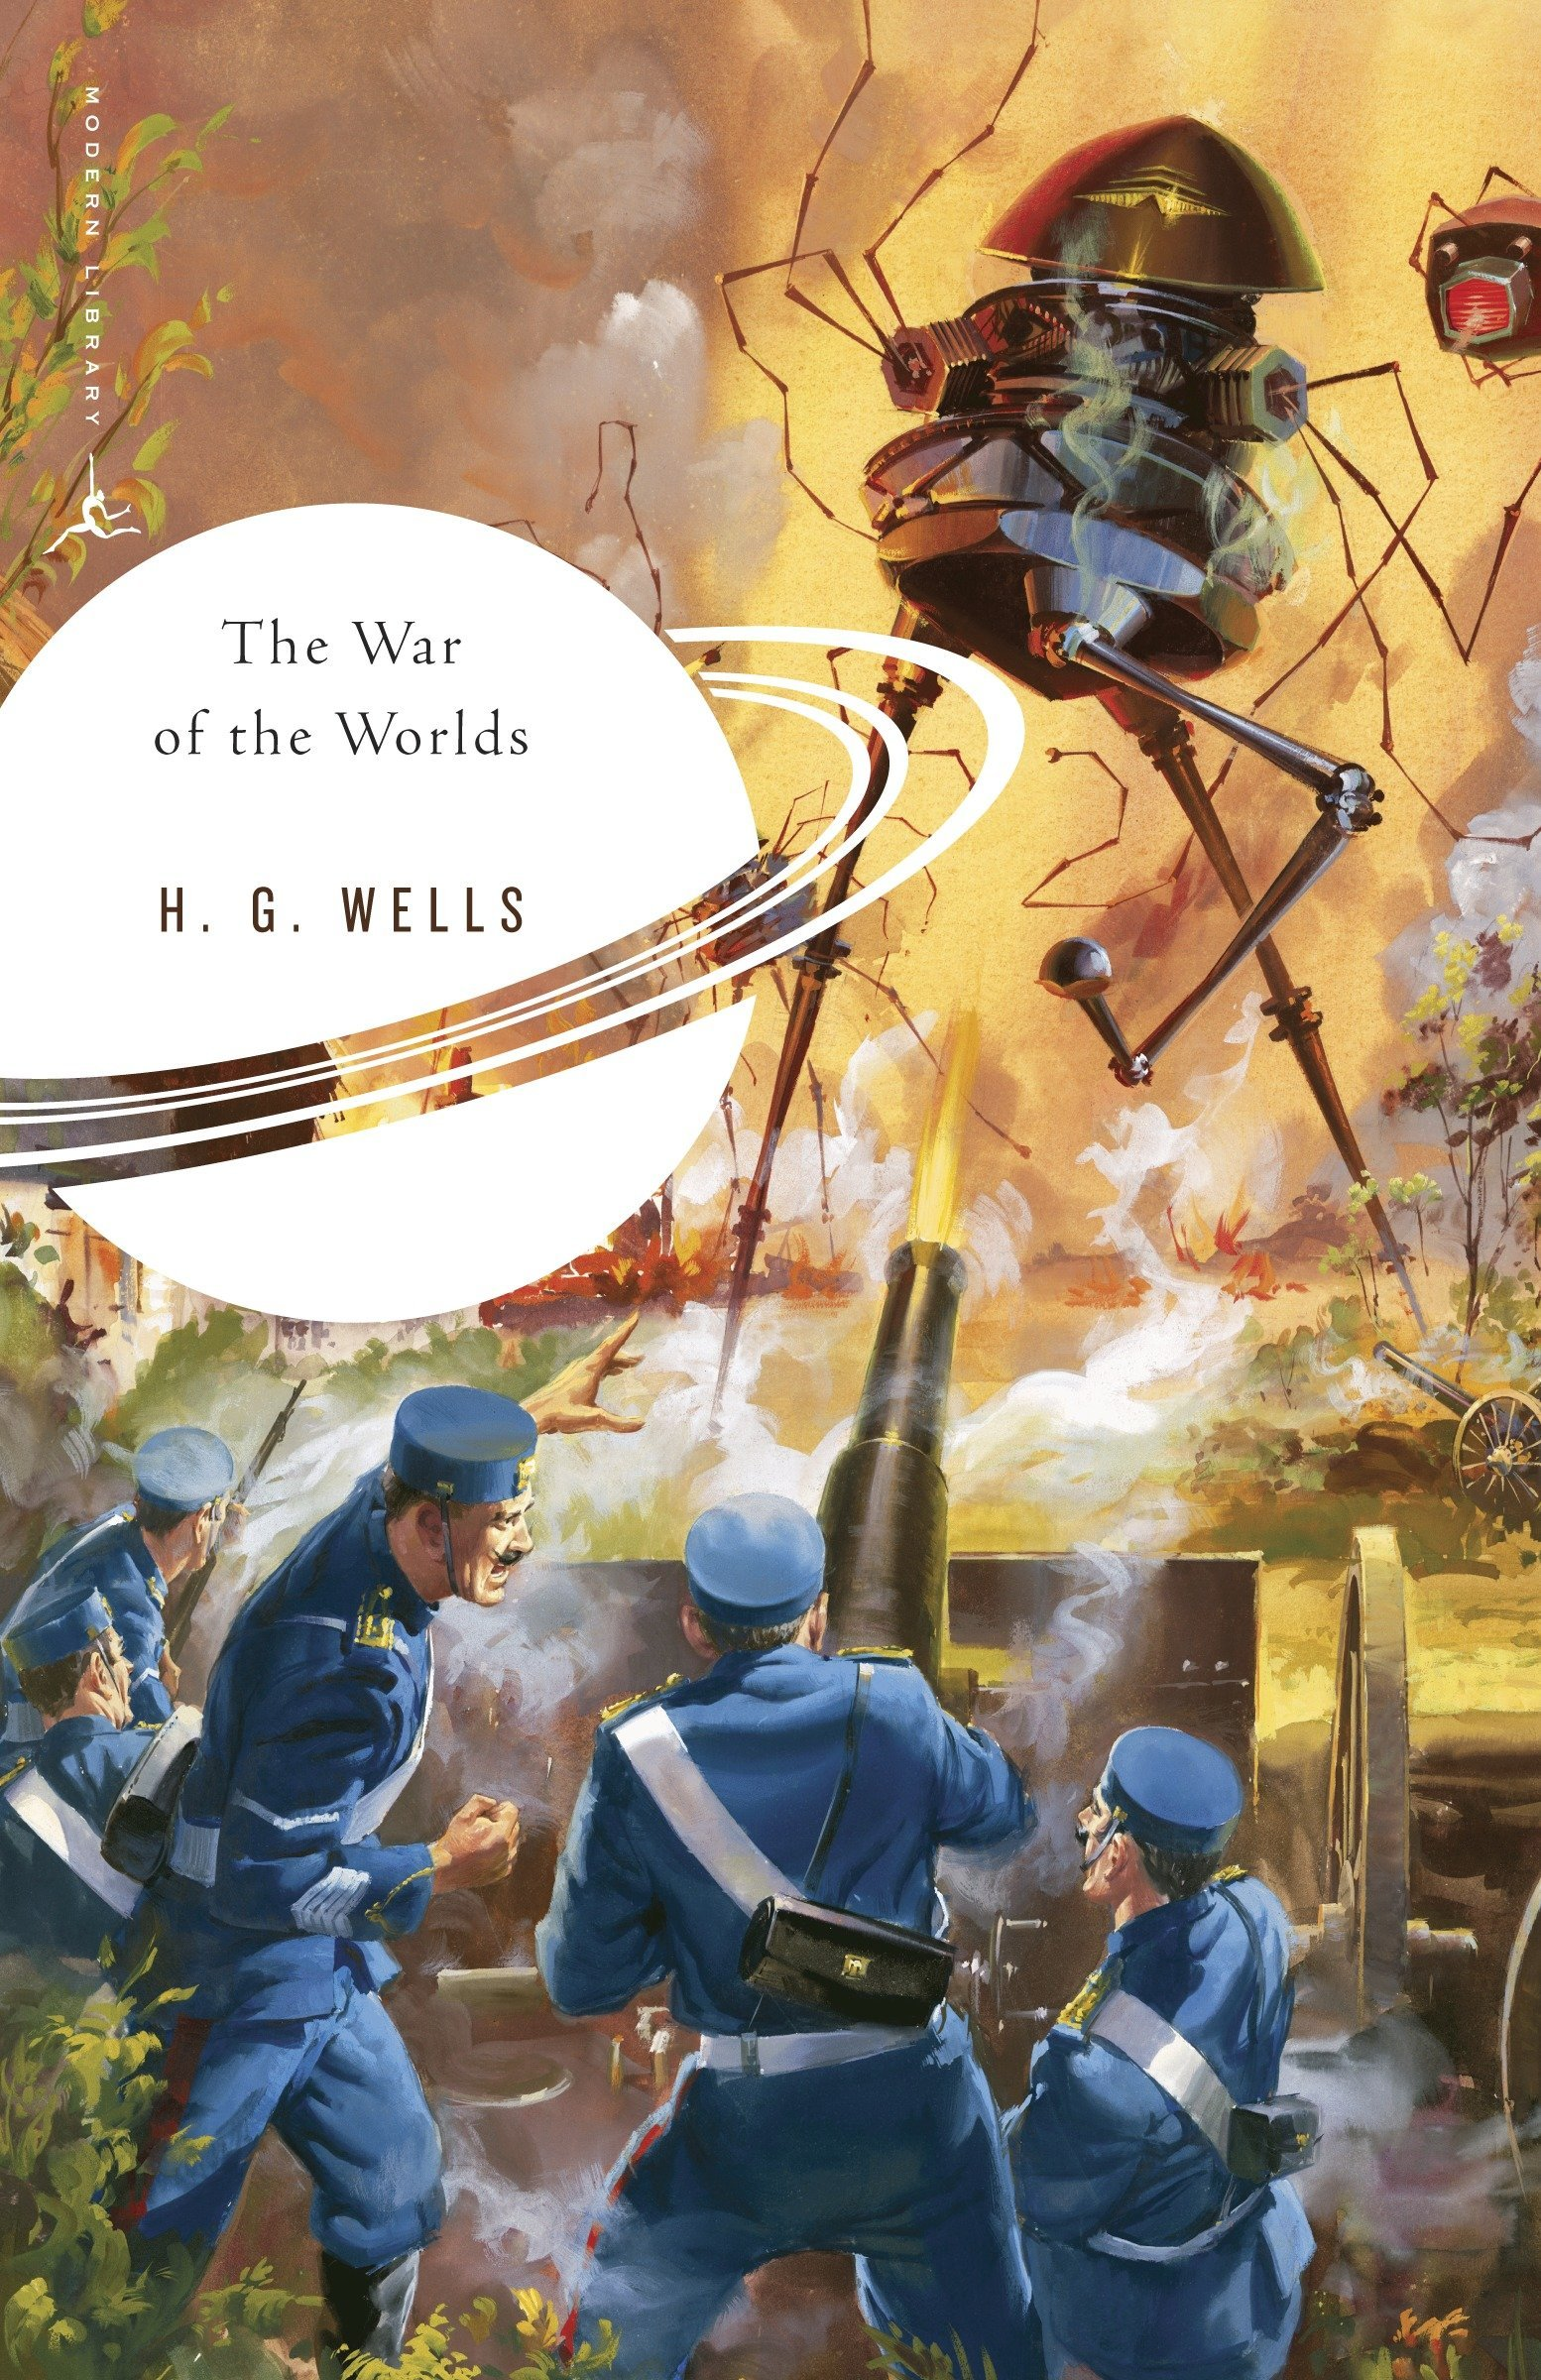 hg wells war of the worlds imdb